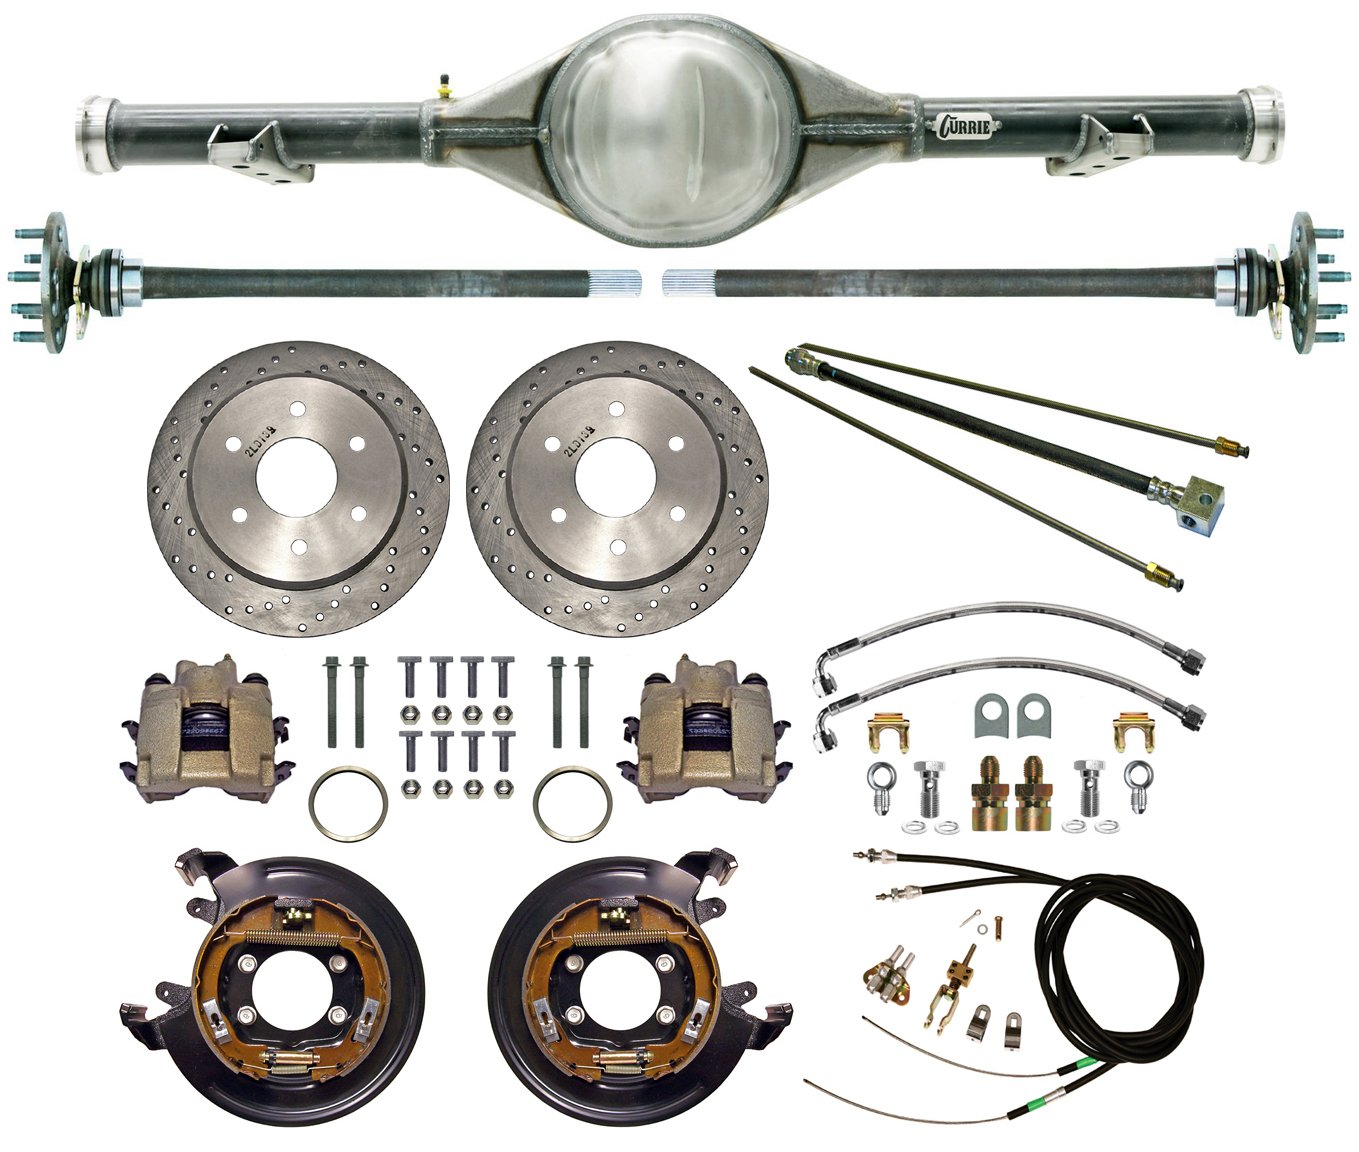 NEW CURRIE 70-87 CHEVY C-10 GMC C-15 C1500 TRUCK 2WD 6-LUG REAR END WITH DRILLED DISC BRAKES, BRAKE LINES, PARKING BRAKE CABLES, AXLES & BEARINGS, CHEVROLET C10 C15 1981 1982 1983 1984 by Southwest Speed